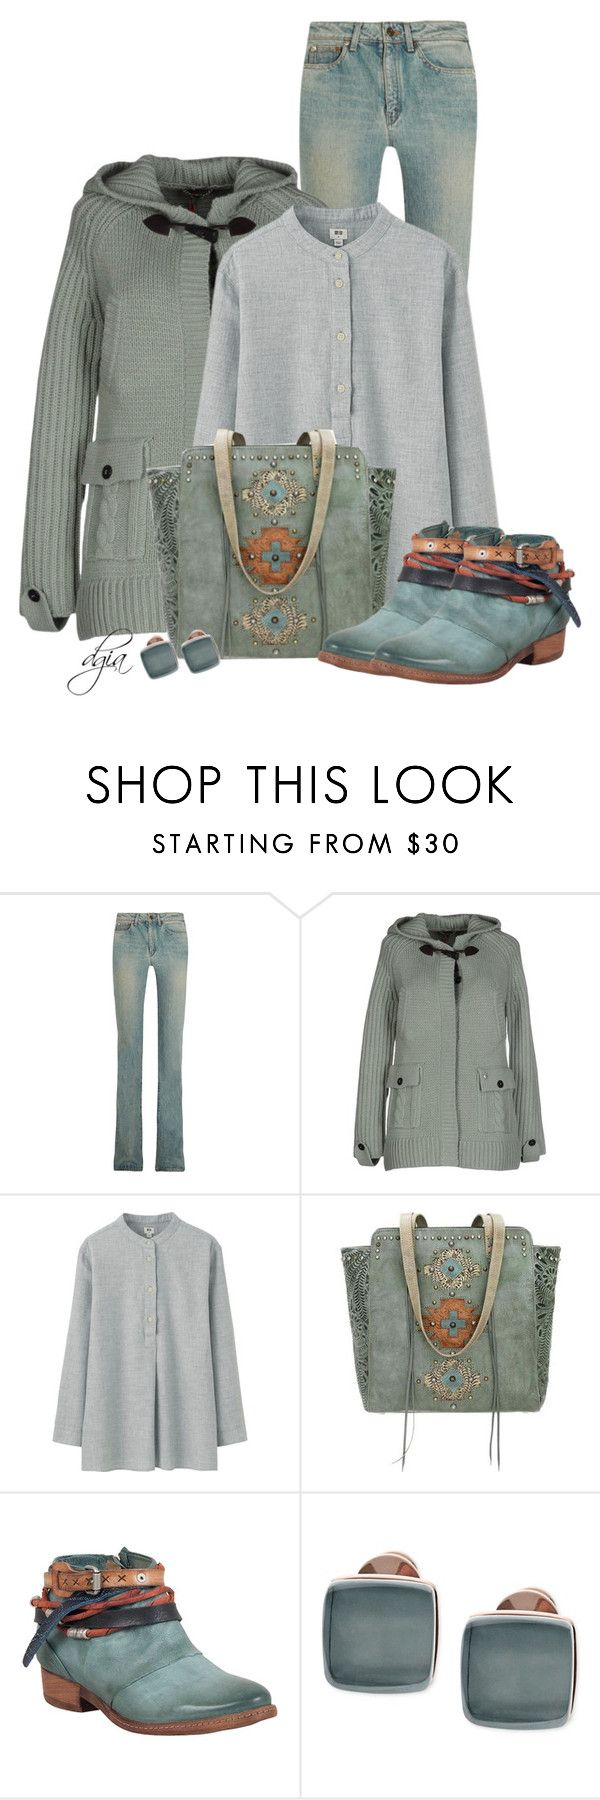 """""""American West Navajo Soul Tote"""" by dgia ❤ liked on Polyvore featuring Yves Saint Laurent, Woolrich, Uniqlo, American West, A.S. 98 and Skagen"""